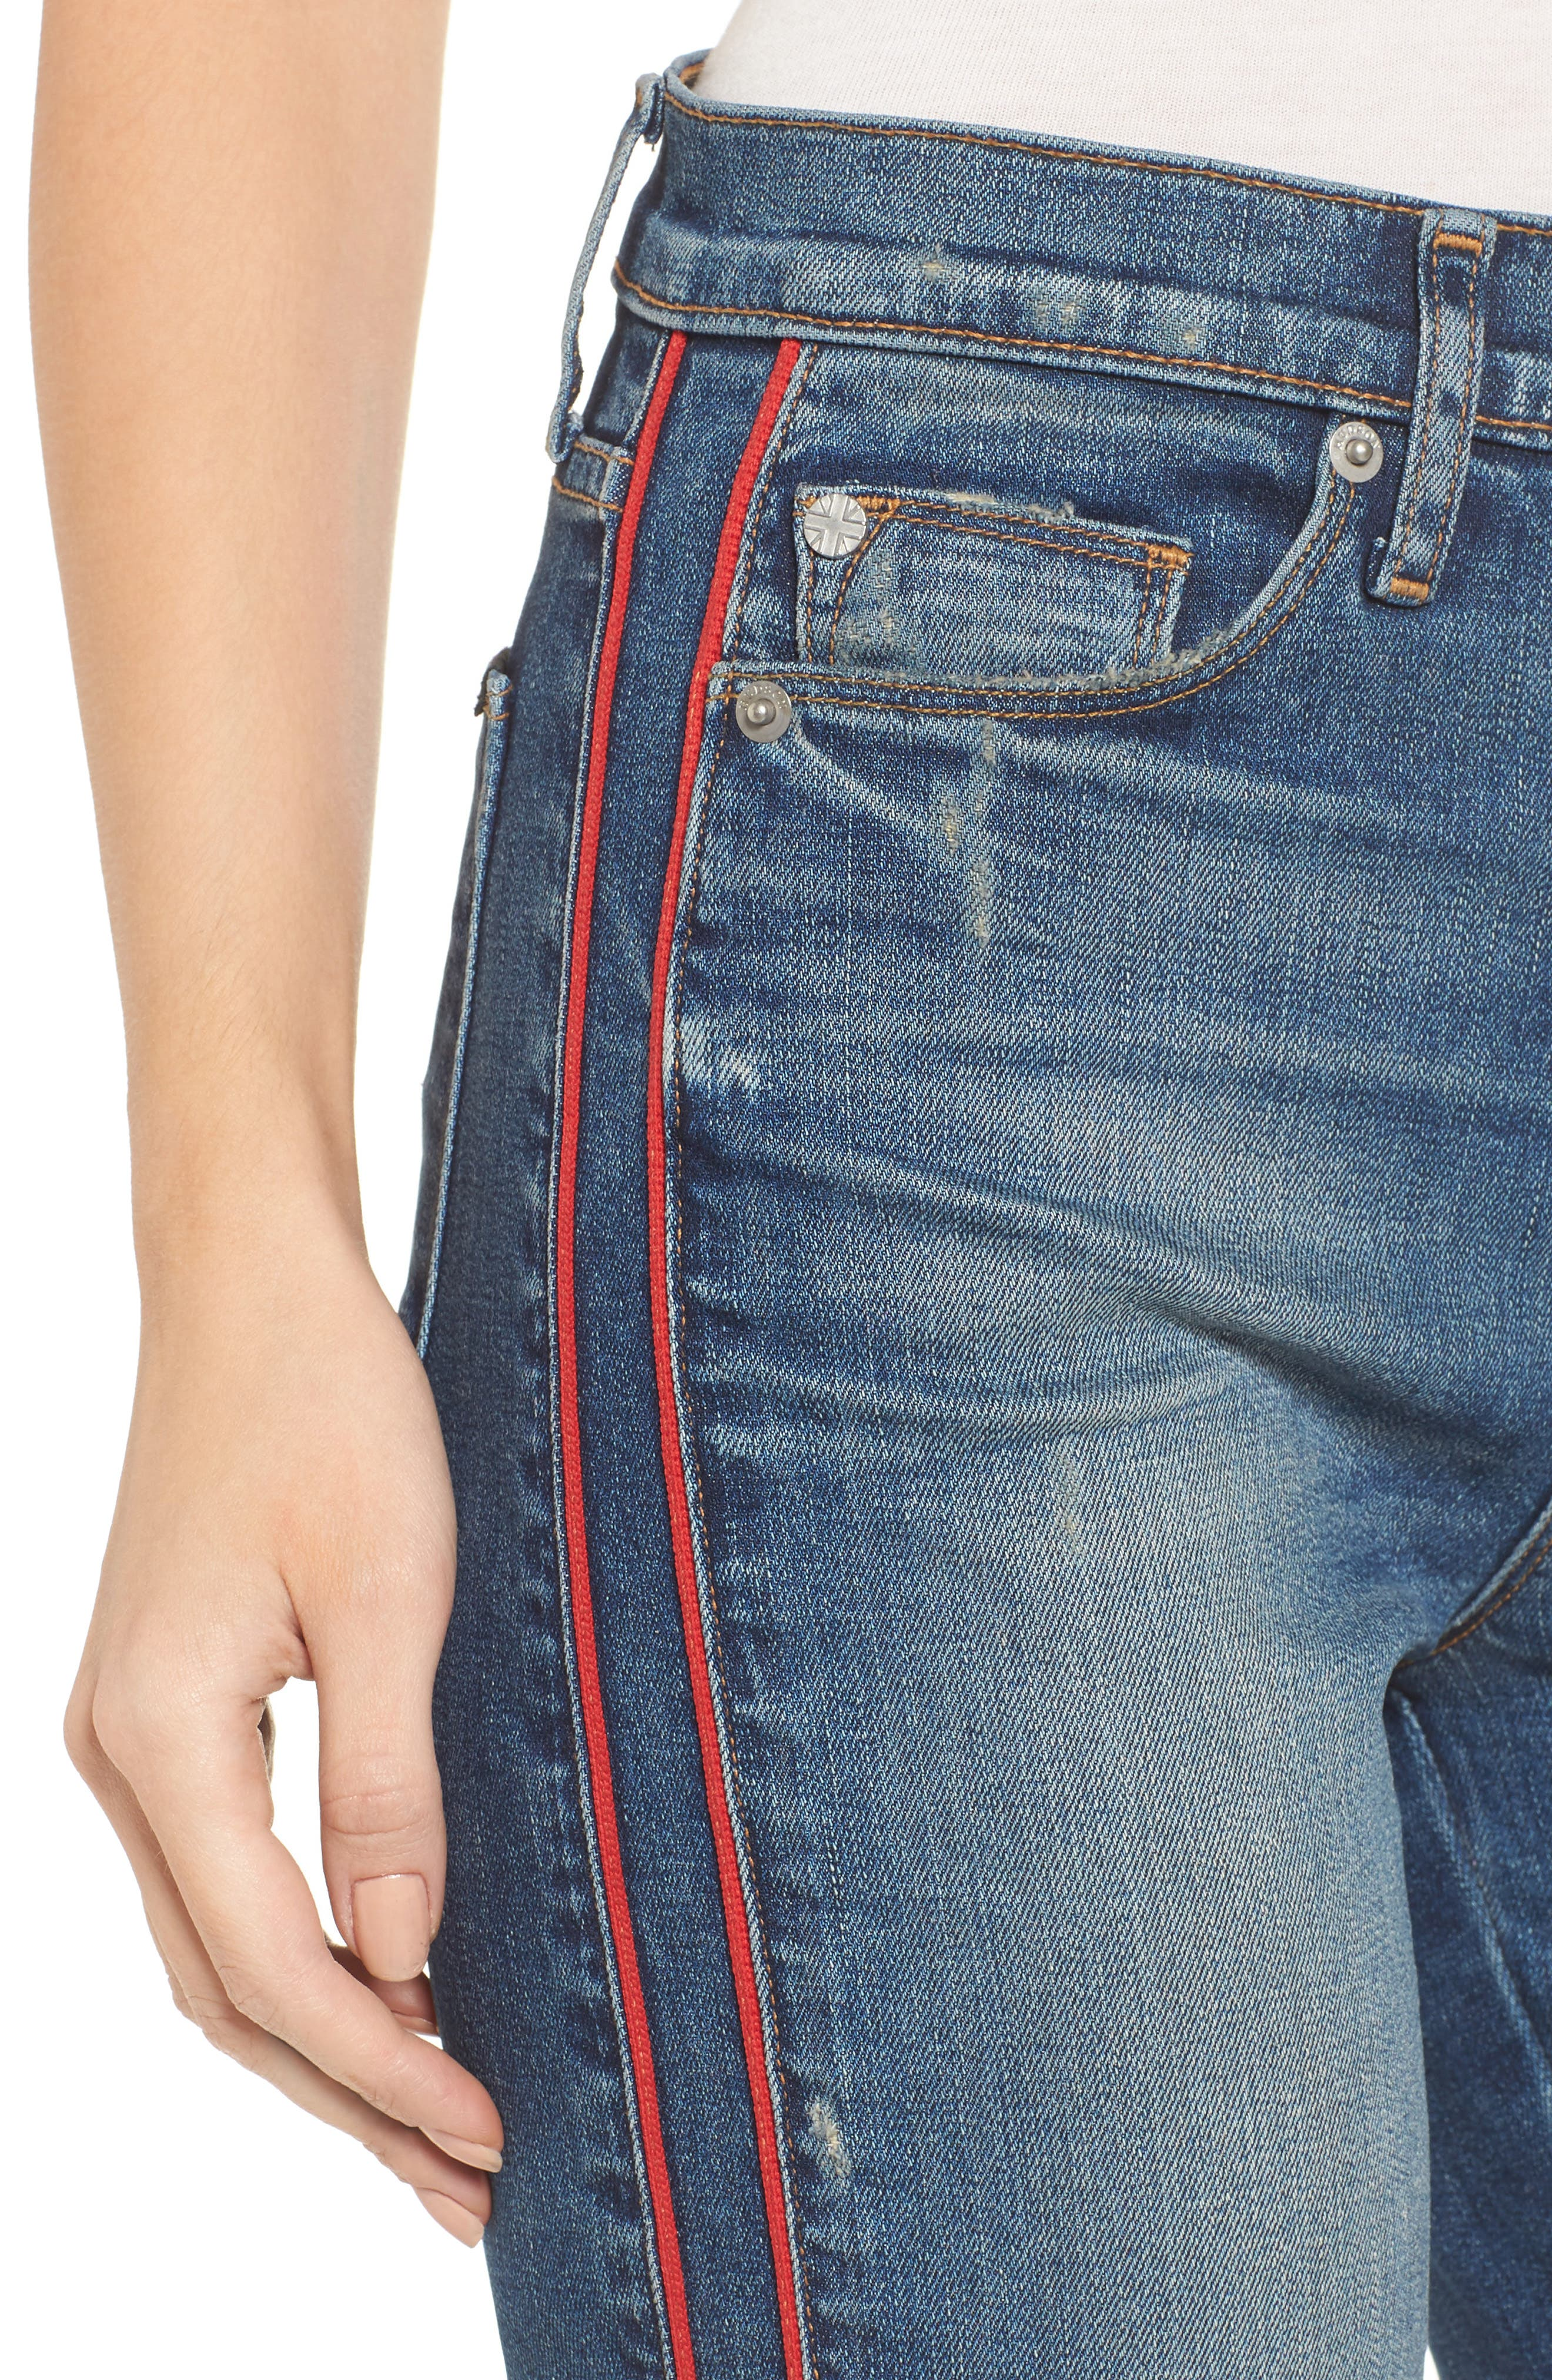 Zoeey High Waist Crop Jeans,                             Alternate thumbnail 4, color,                             Reform